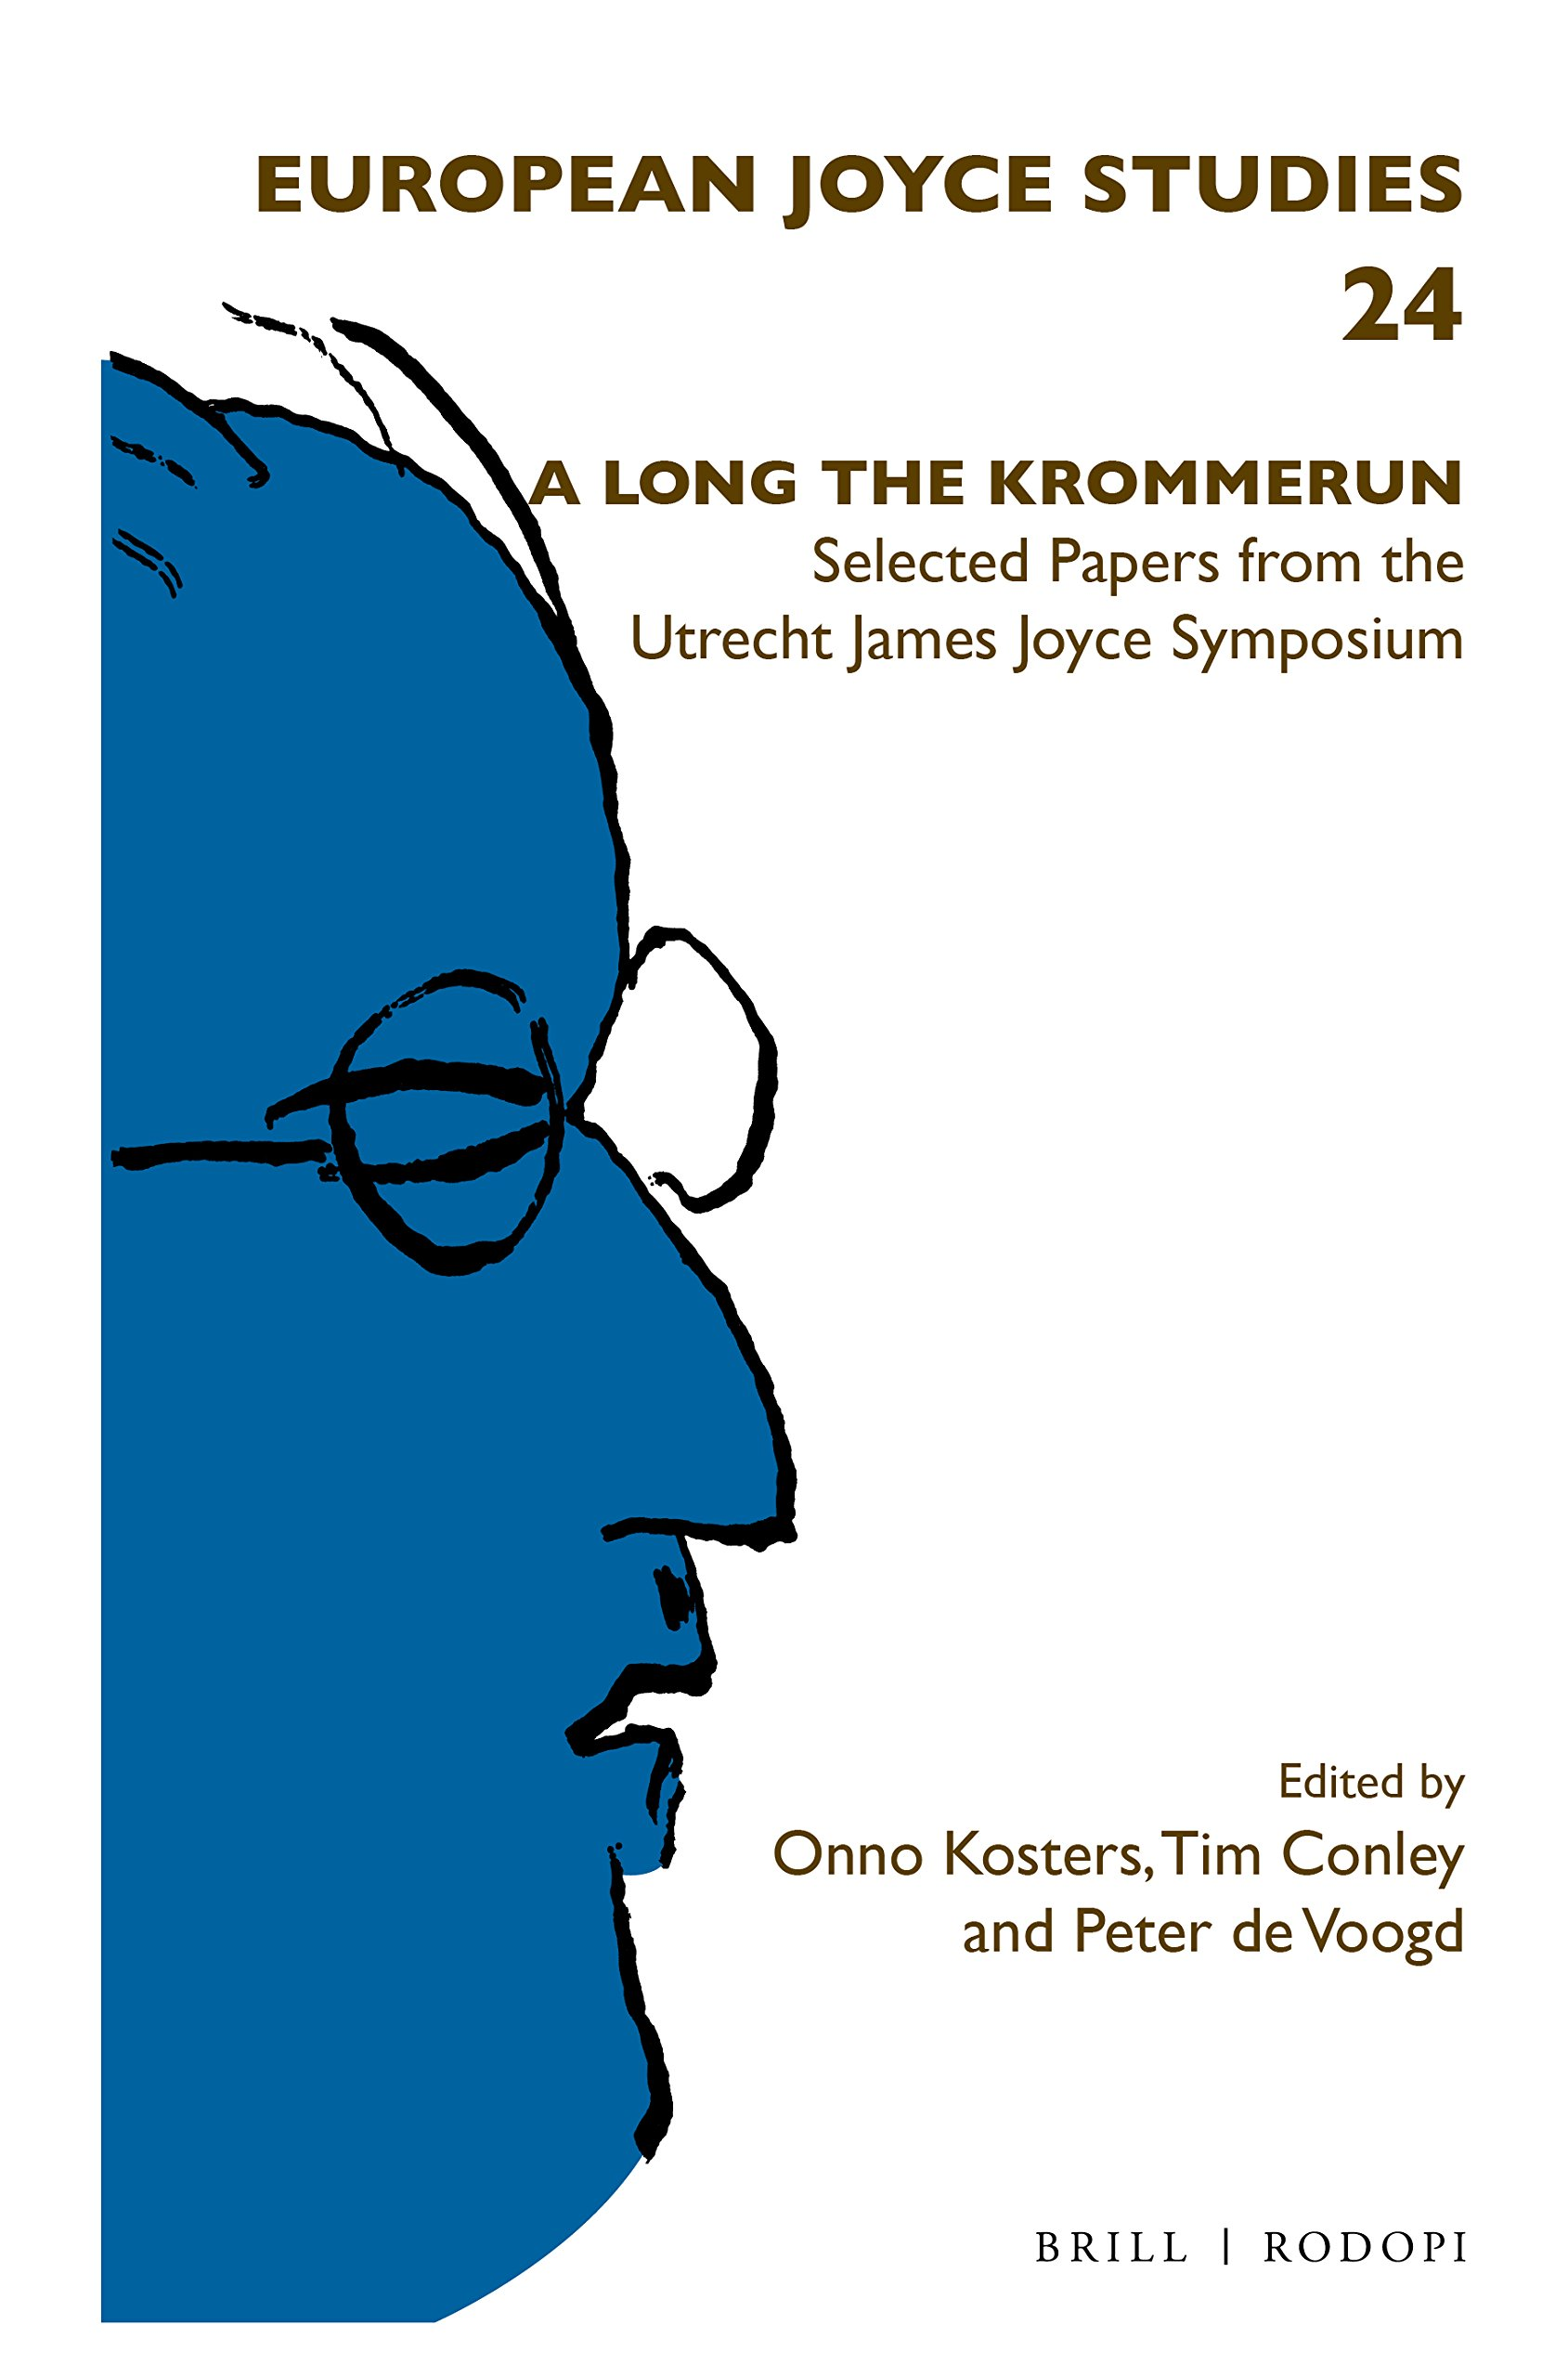 Download A LONG THE KROMMERUN, Selected Papers from the Utrecht James Joyce Symposium (European Joyce Studies) ebook